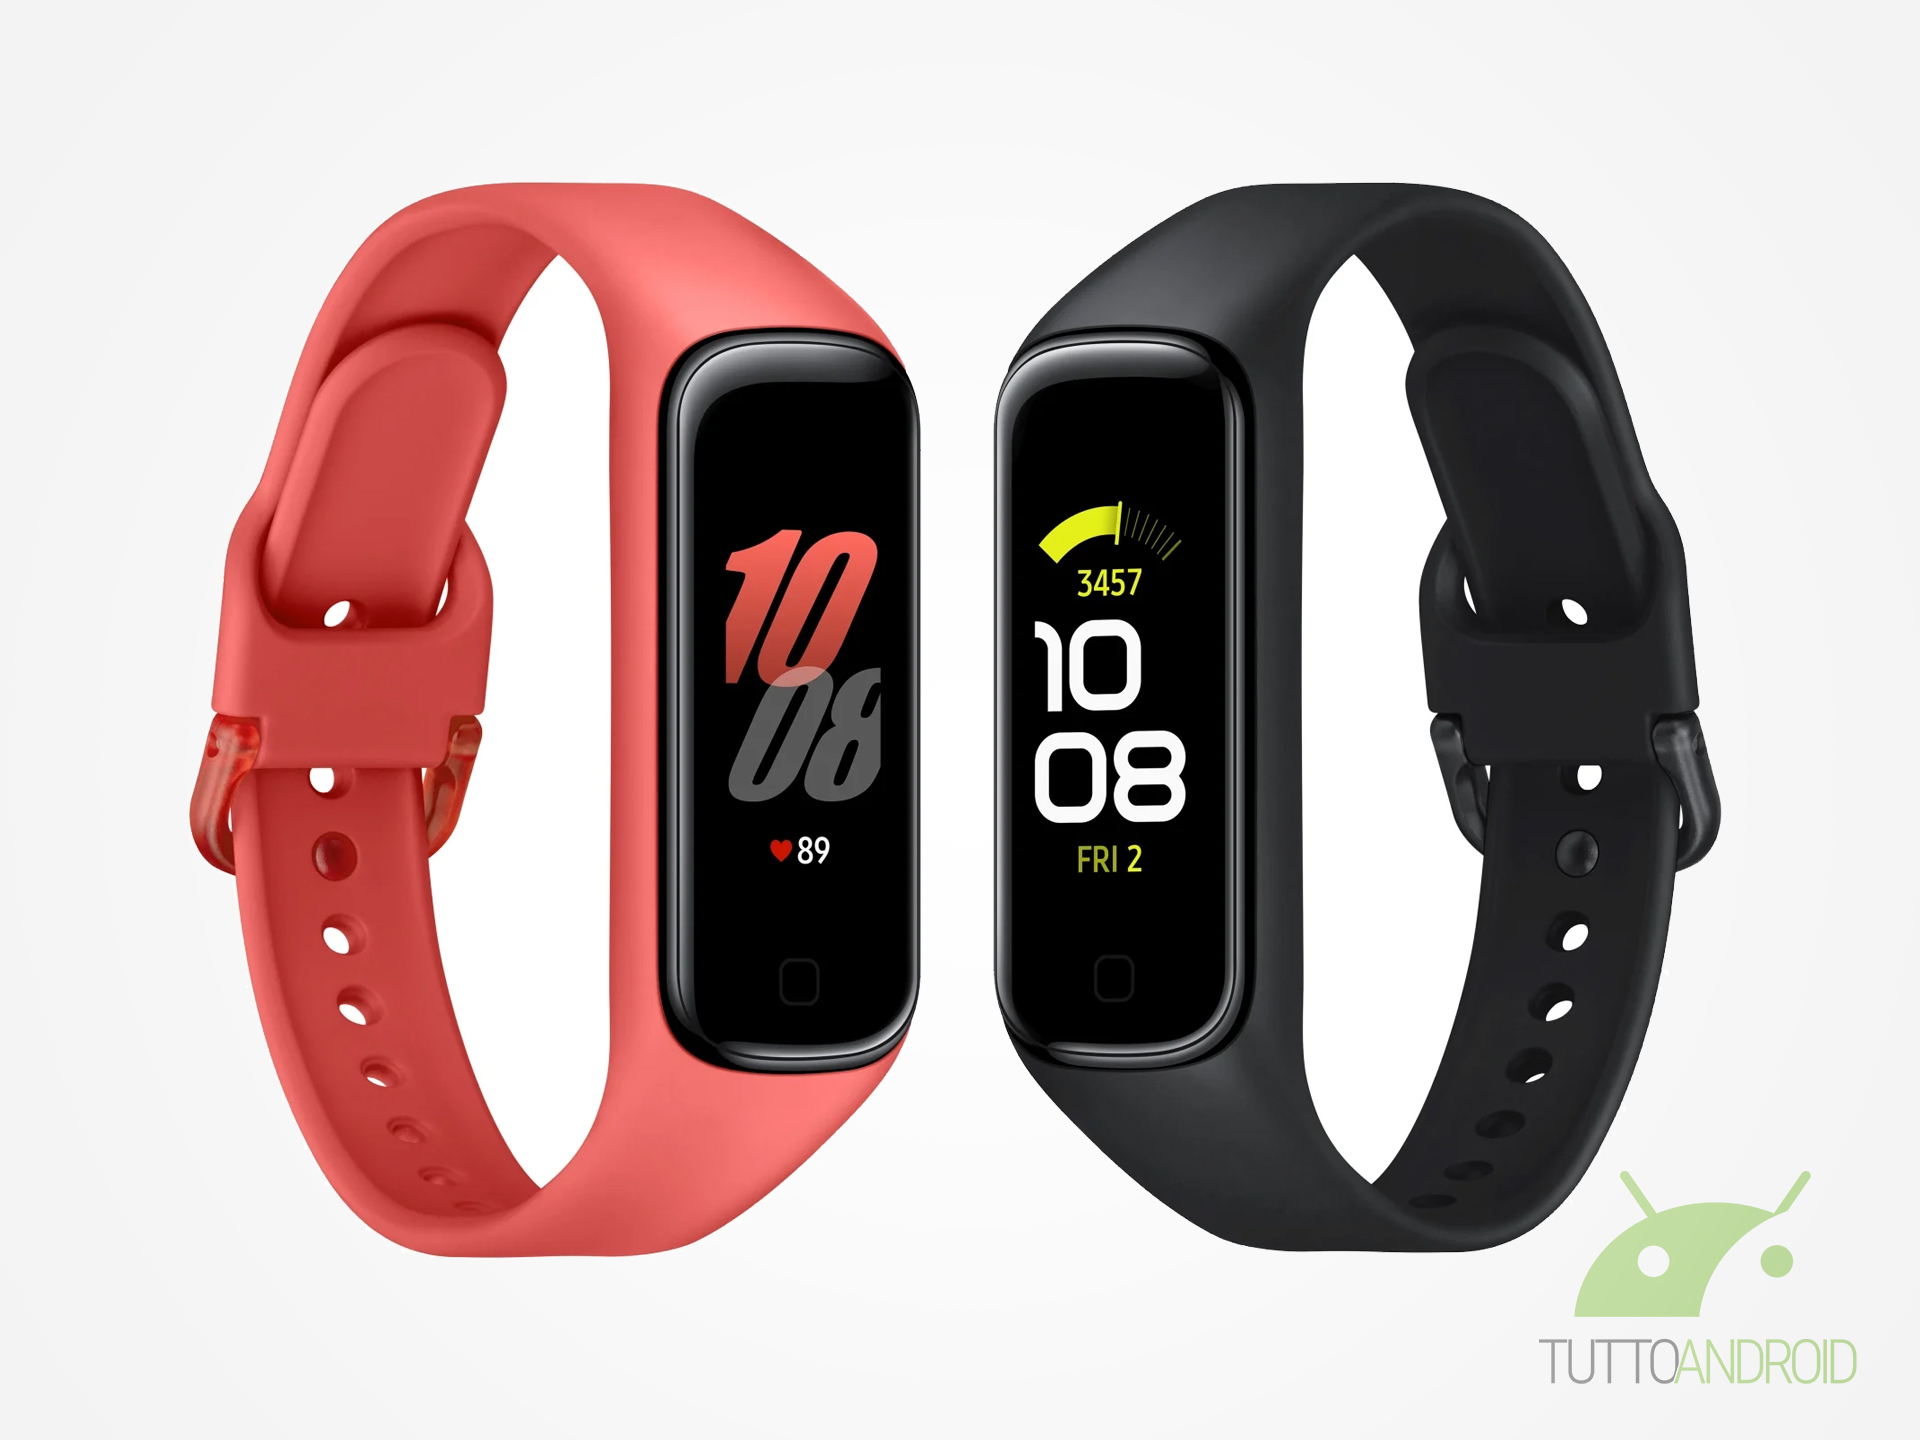 L'app Galaxy Wearable si aggiorna per supportare Galaxy Fit2